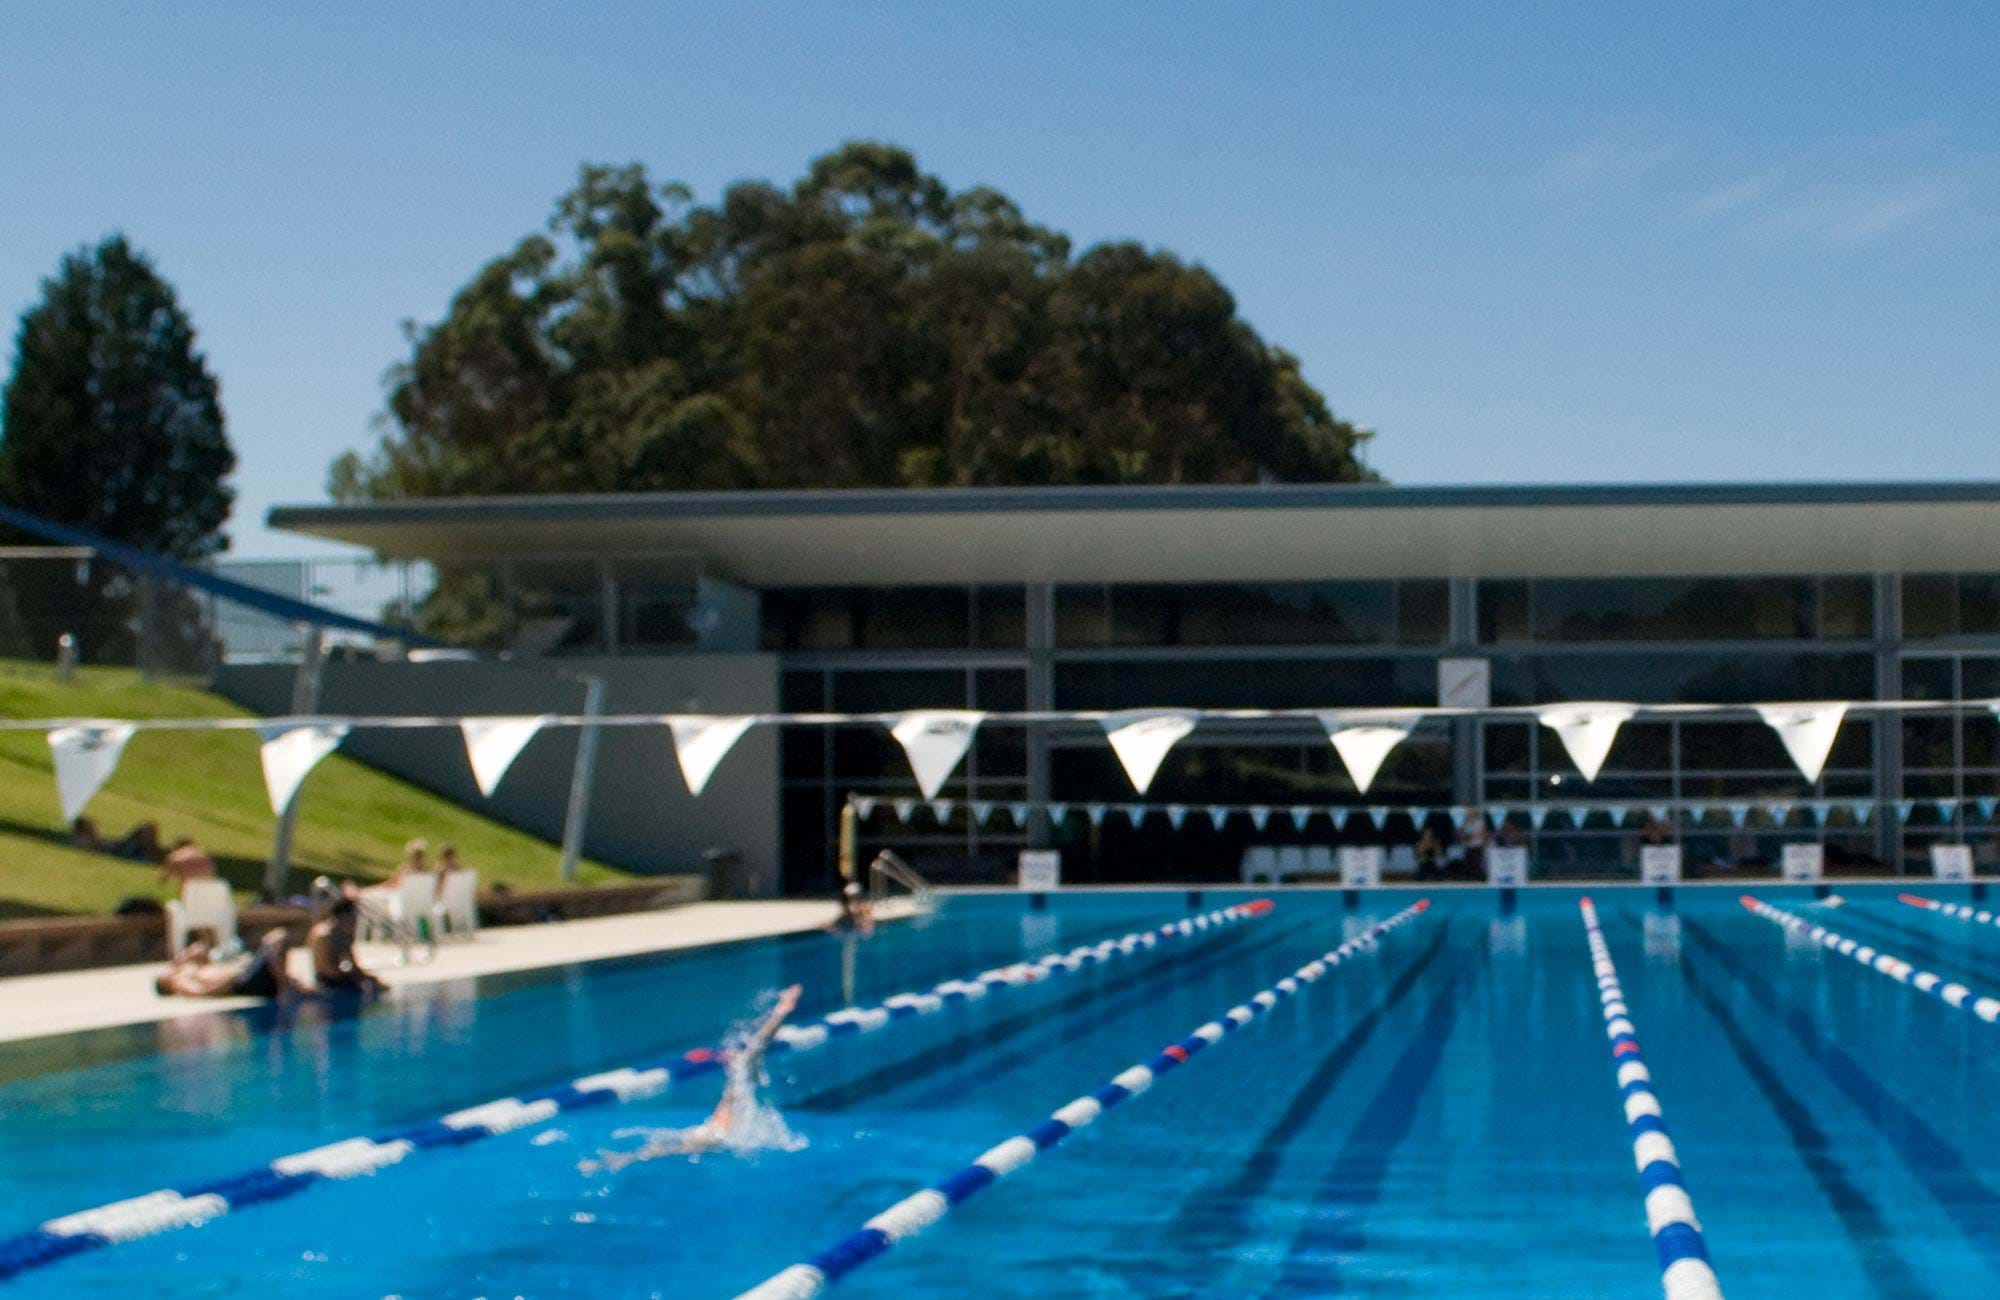 Macquarie University Swimmingpool